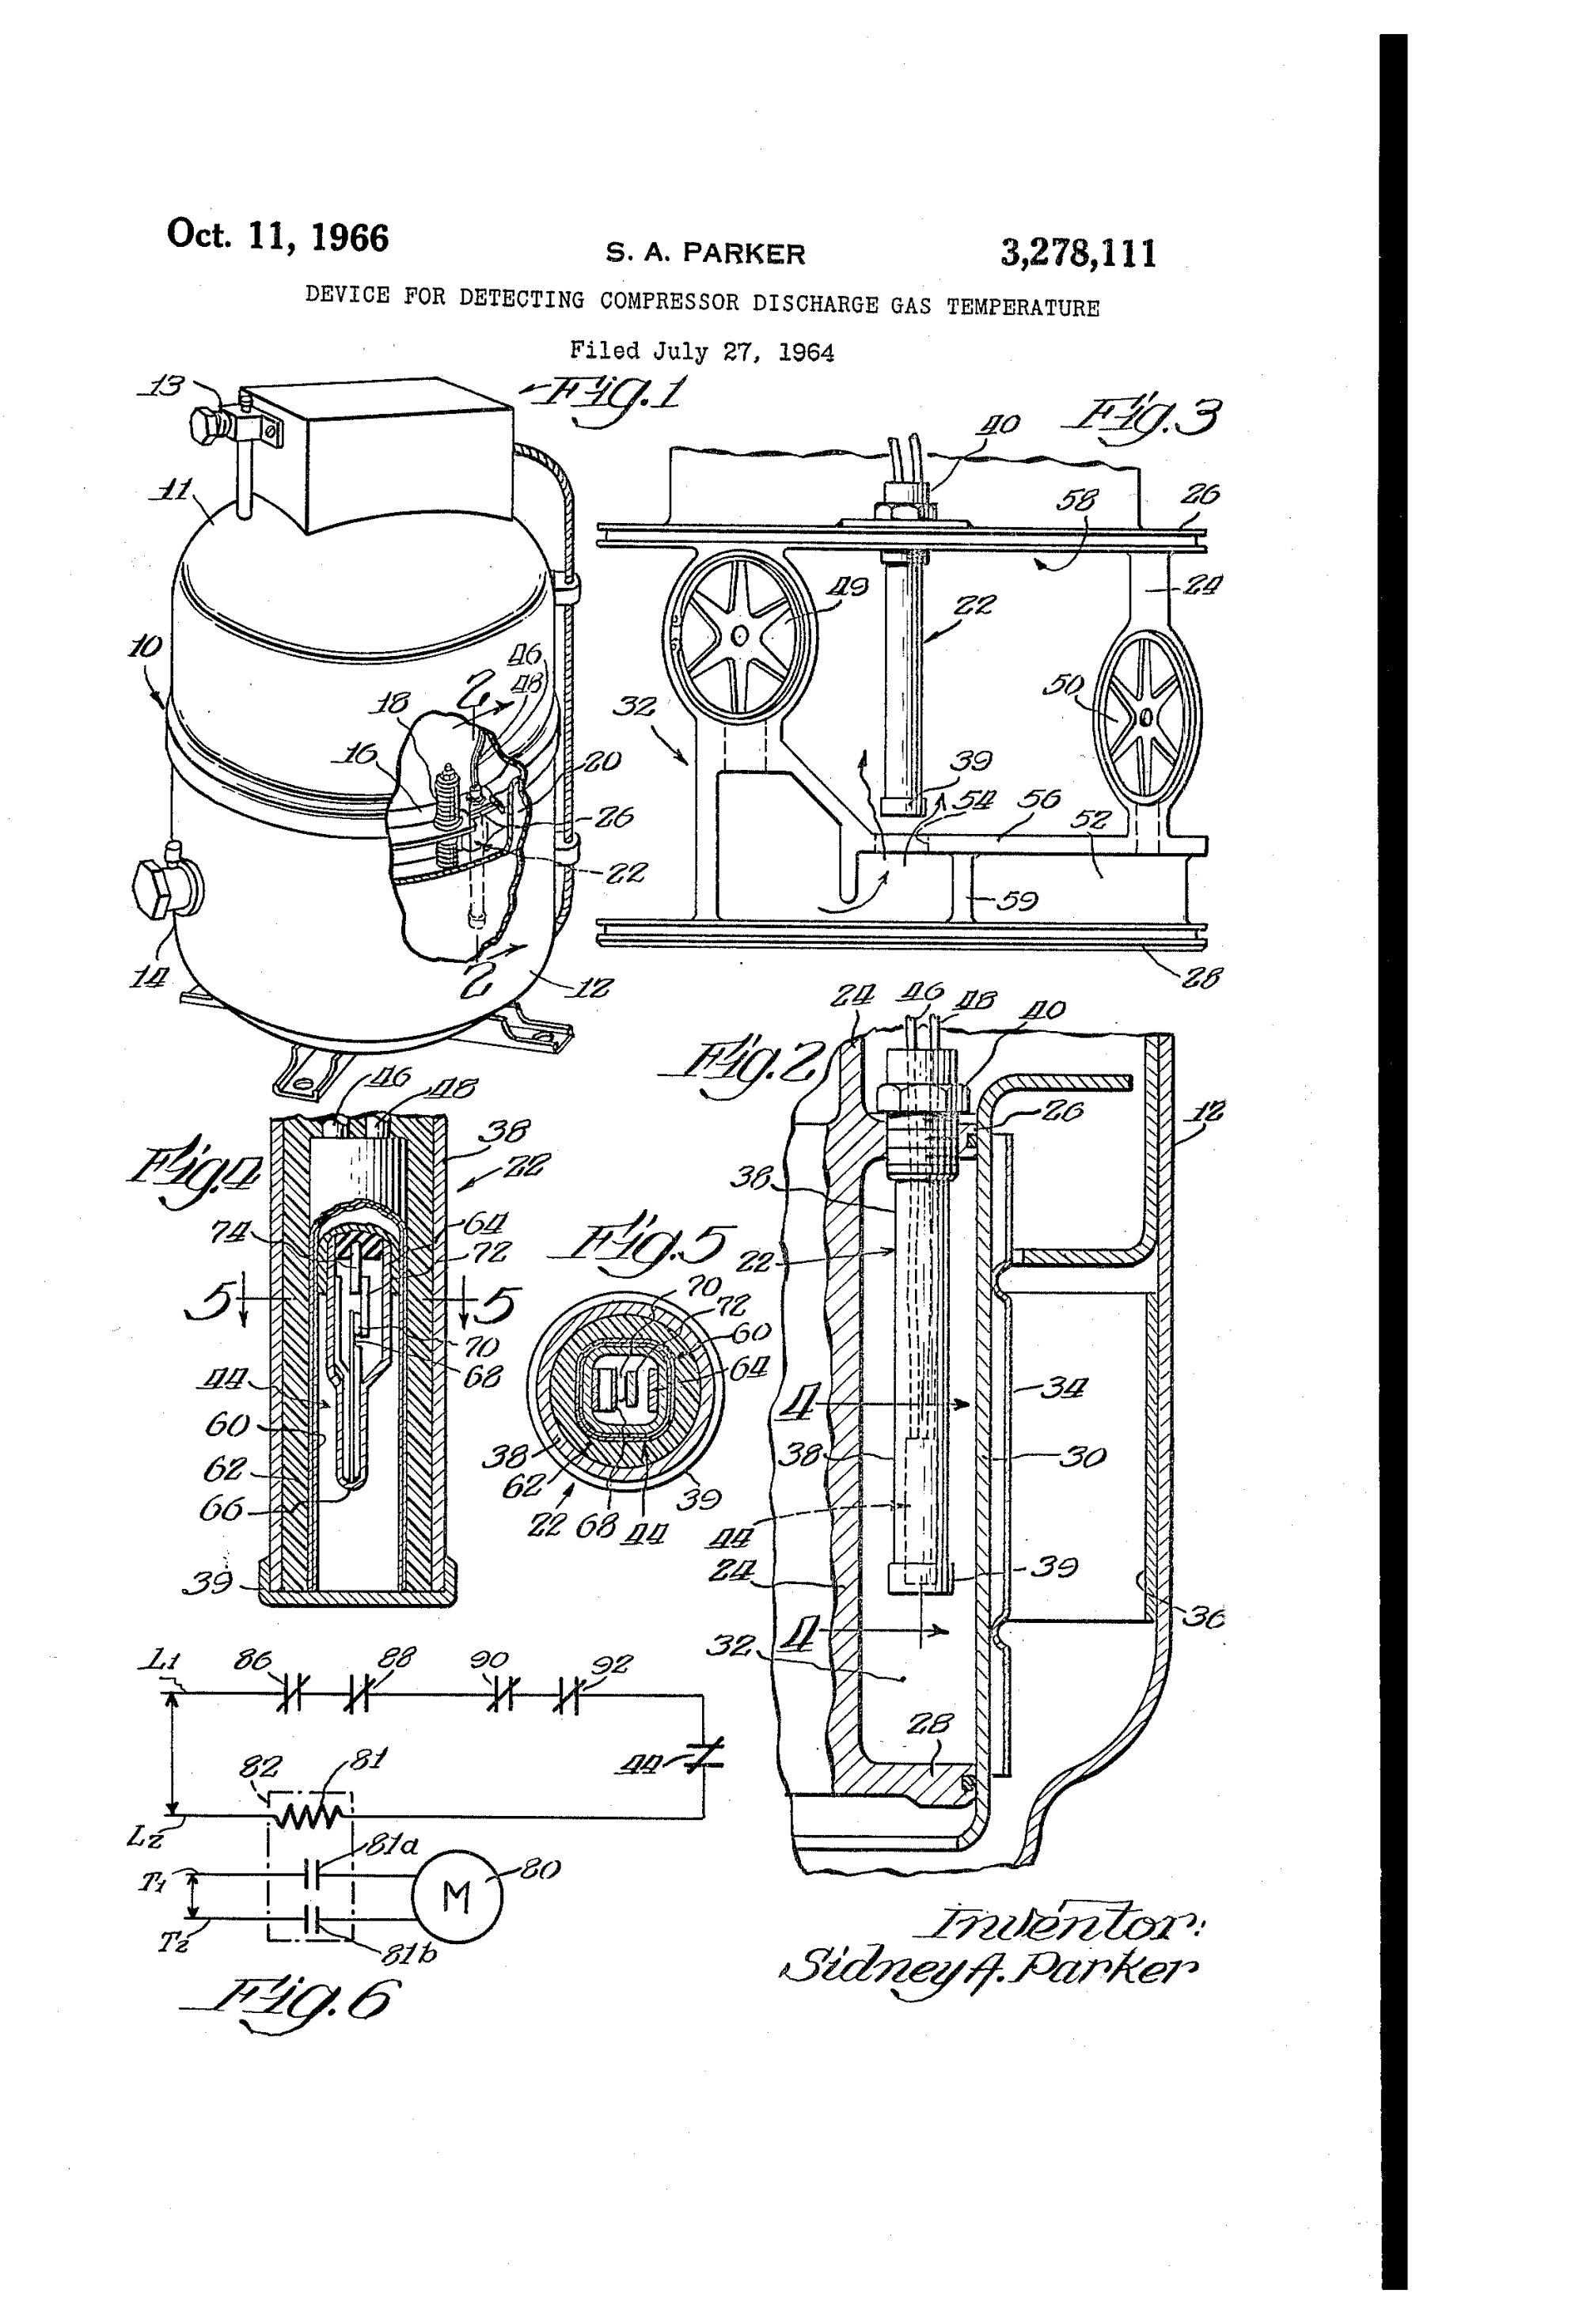 hight resolution of belimo actuator wiring diagram afrb24 s